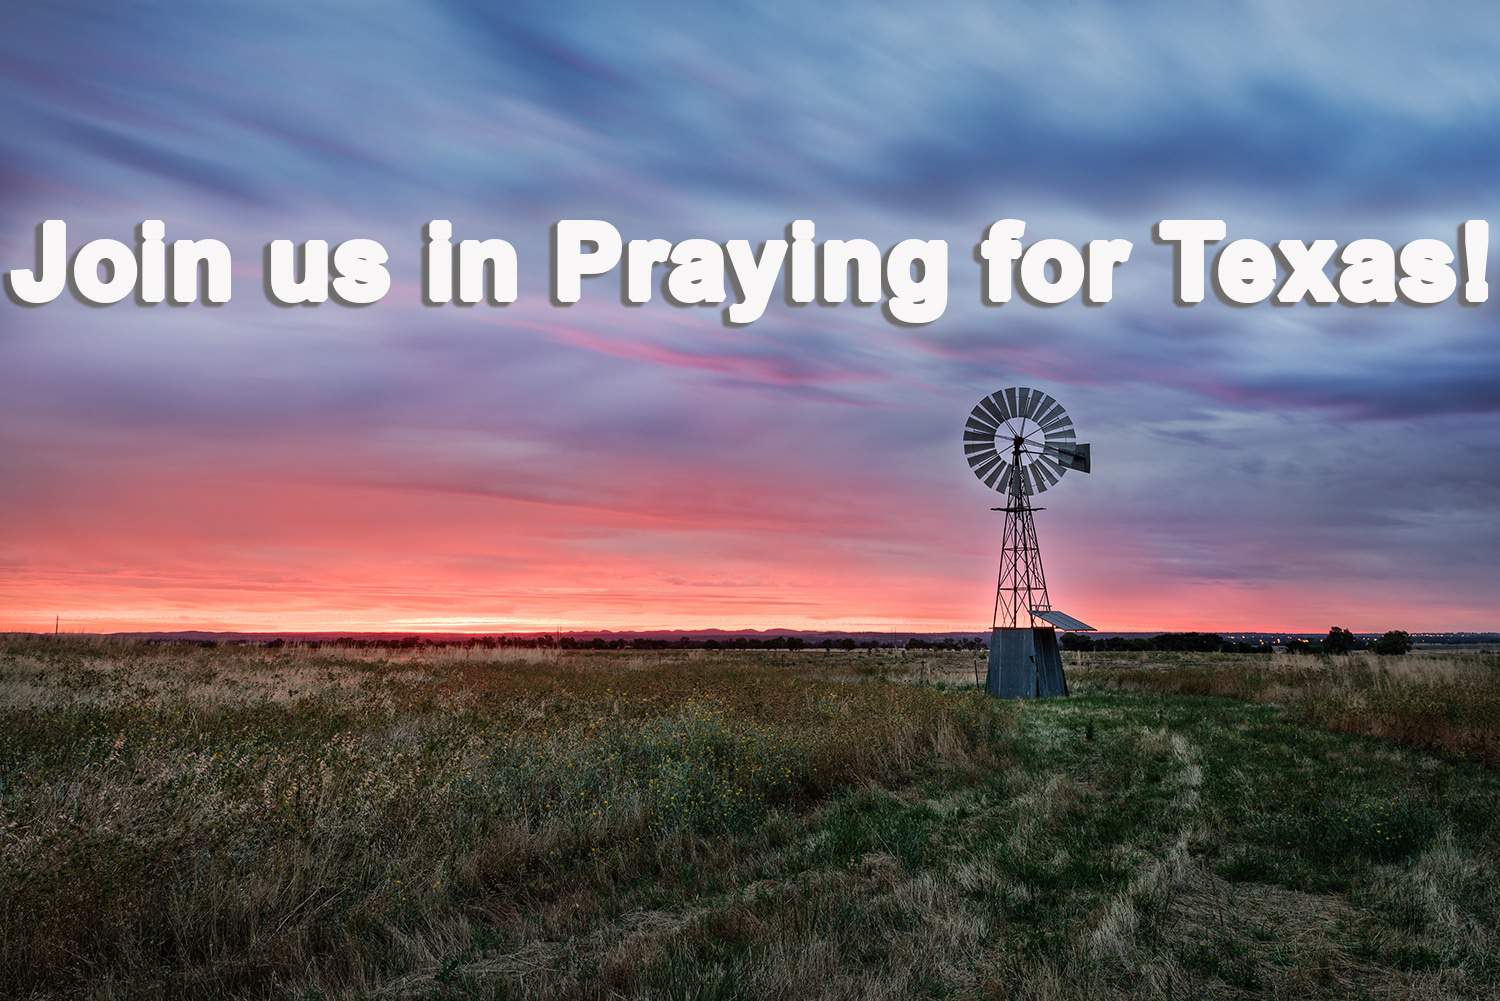 Appleview River Resort is Praying for Texas